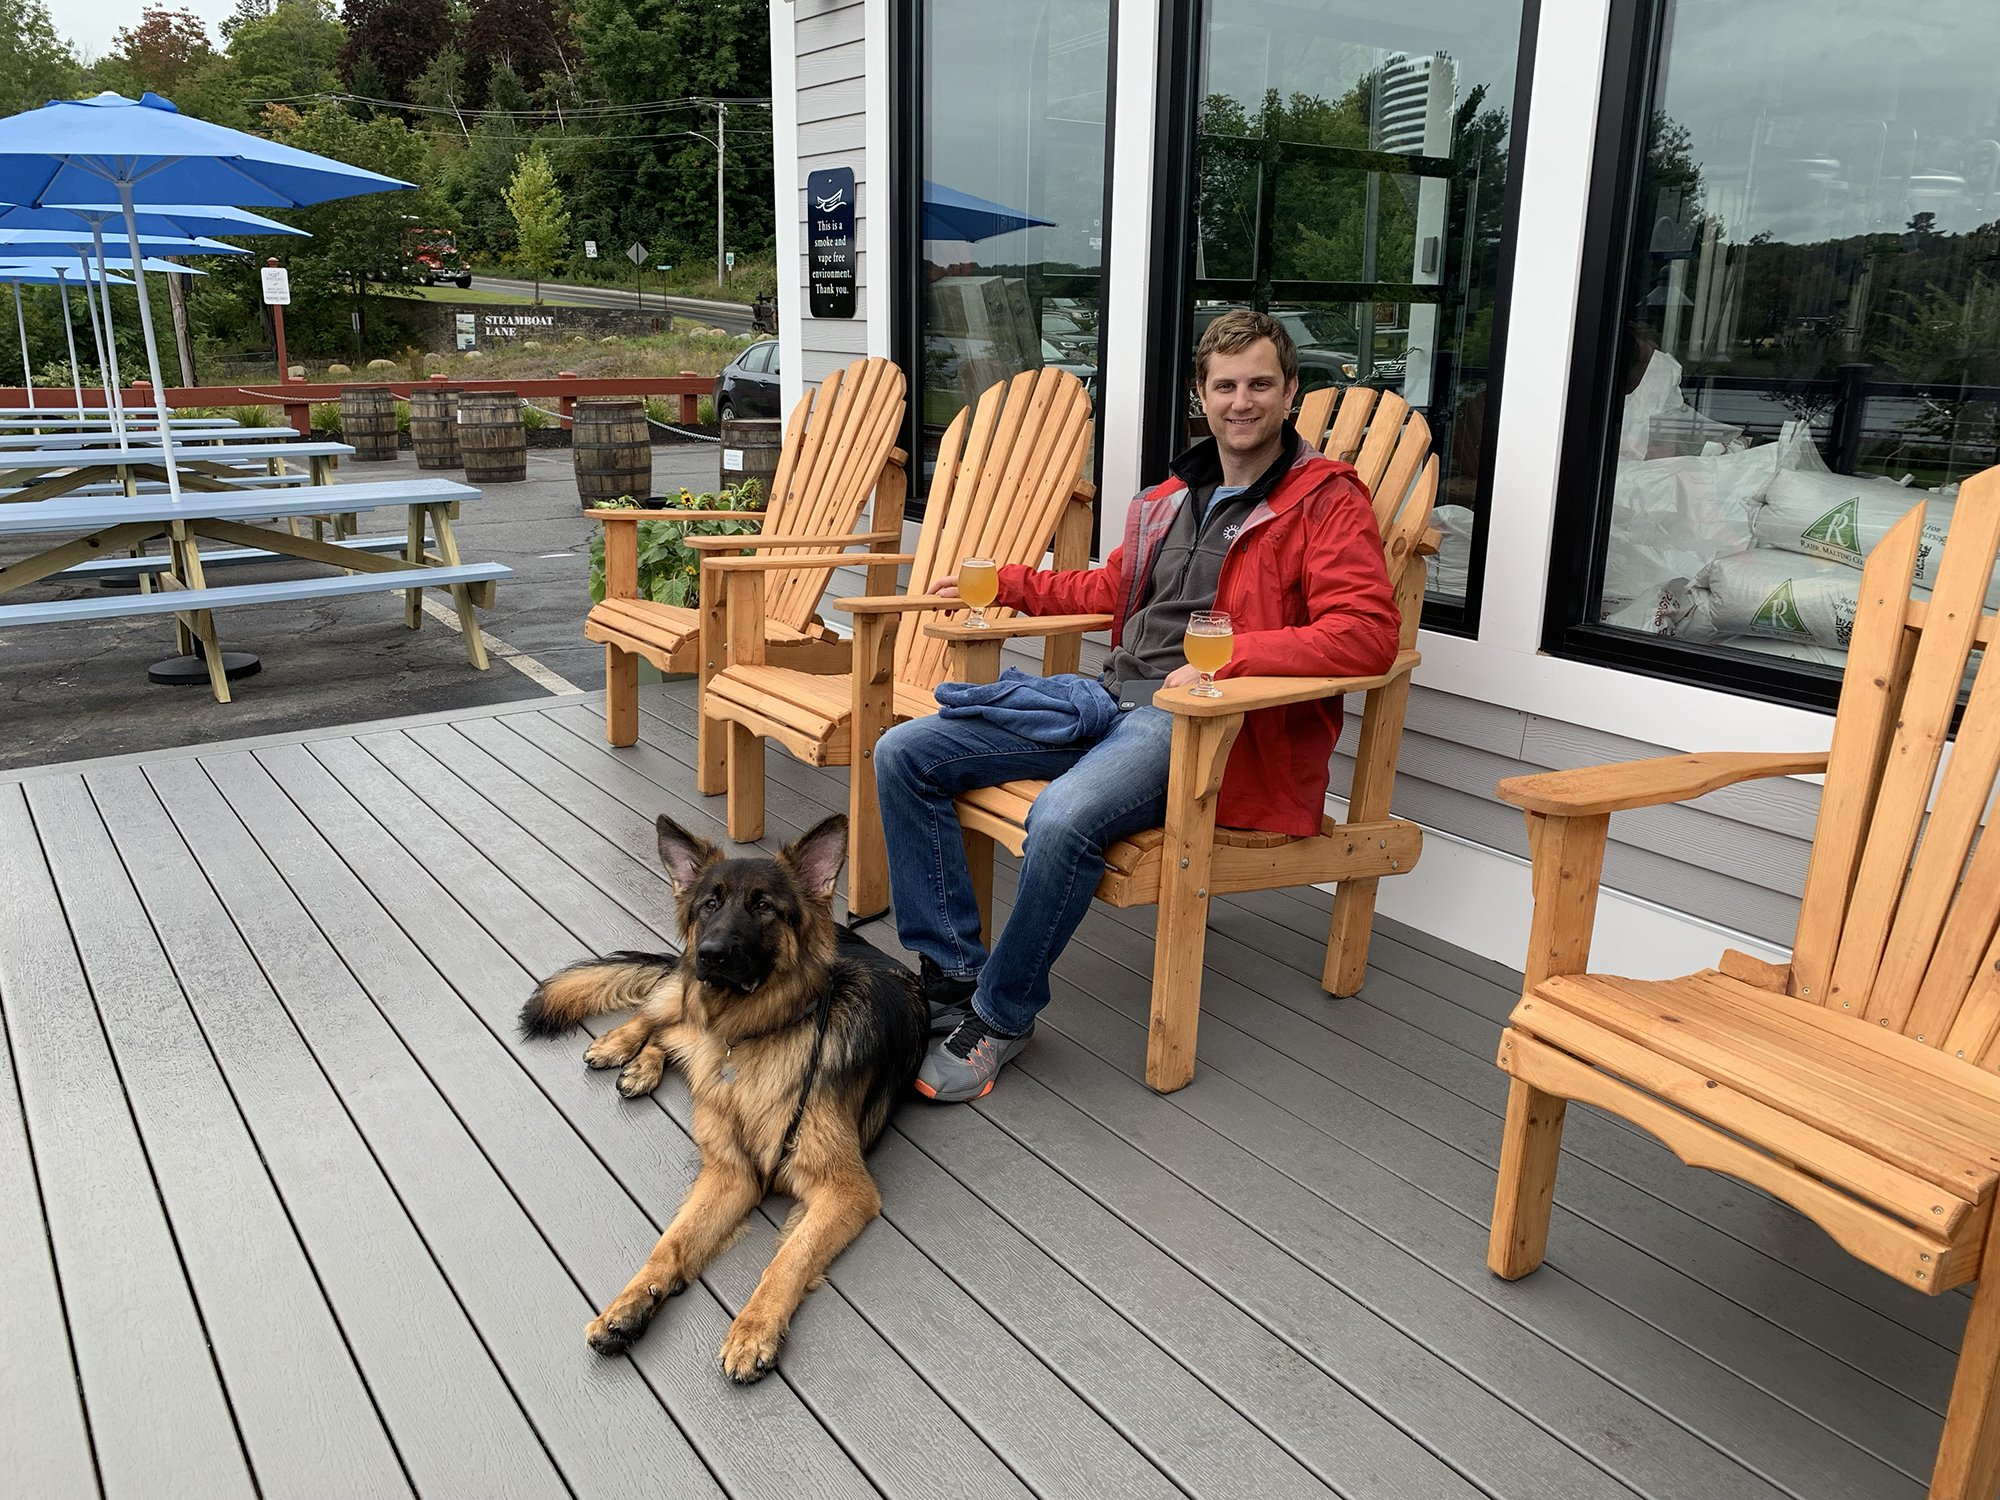 a man and his dog sitting in an Adirondack chair on the deck enjoying a glass of beer at Bateau Brewing in Gardiner, Maine.